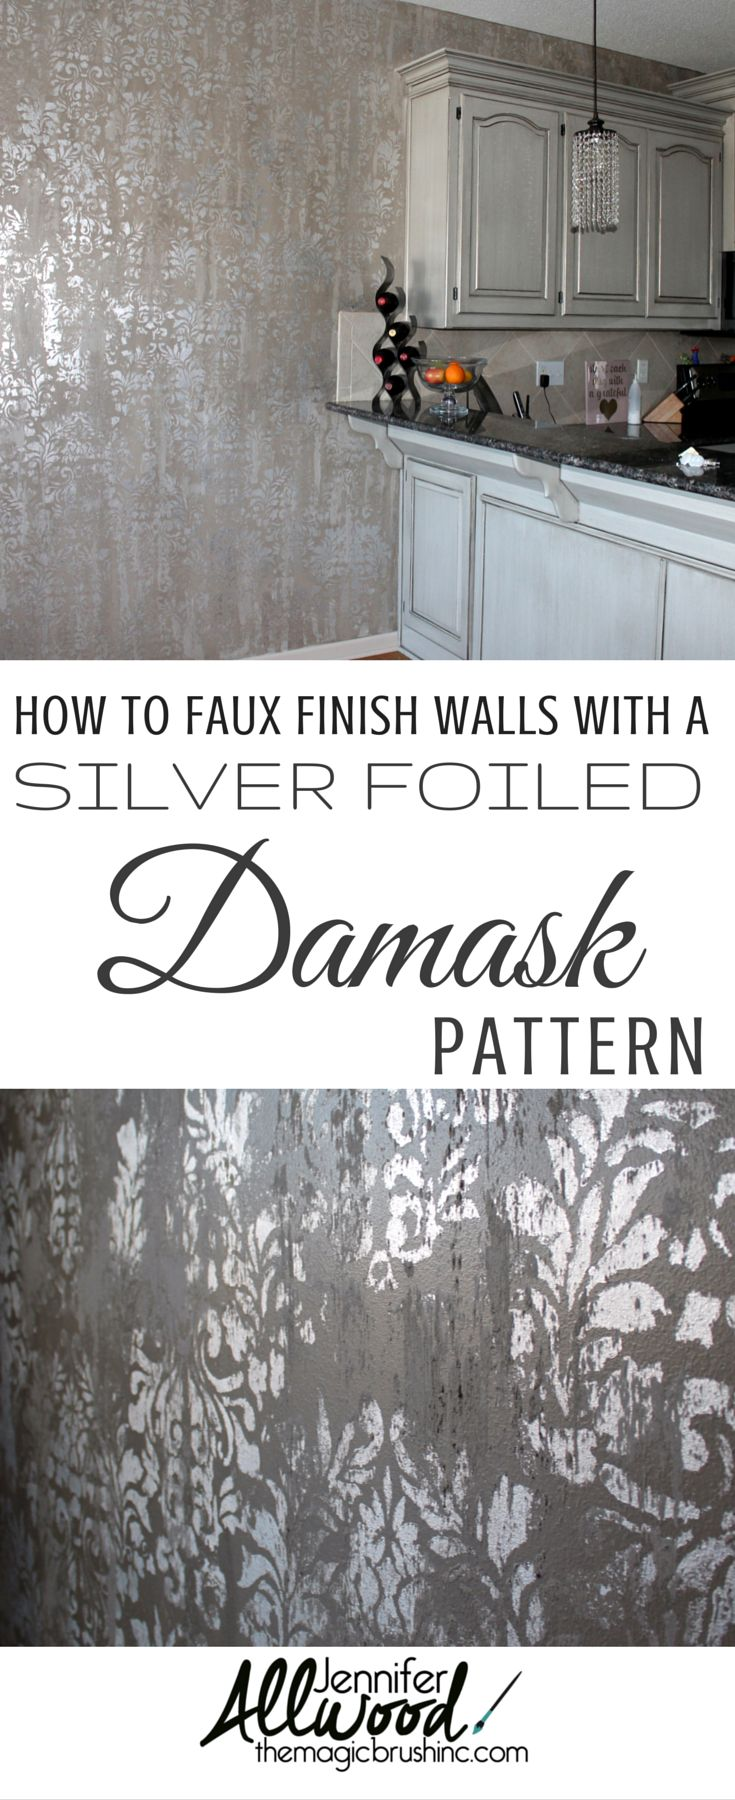 Learn how to faux finish your walls with a silver foiled damask pattern. This finish combines the elegance and sophistication of metallic foils with the ruggedness of a stone texture …making it the perfectly balanced faux for many decors. This is an absolute winner for a powder bath, a dining room, a niche or a focal wall. The color palette can be changed as well as the stencil design in the background. See more Wall & Ceiling Finish DIY videos at theMagicBrushinc.com